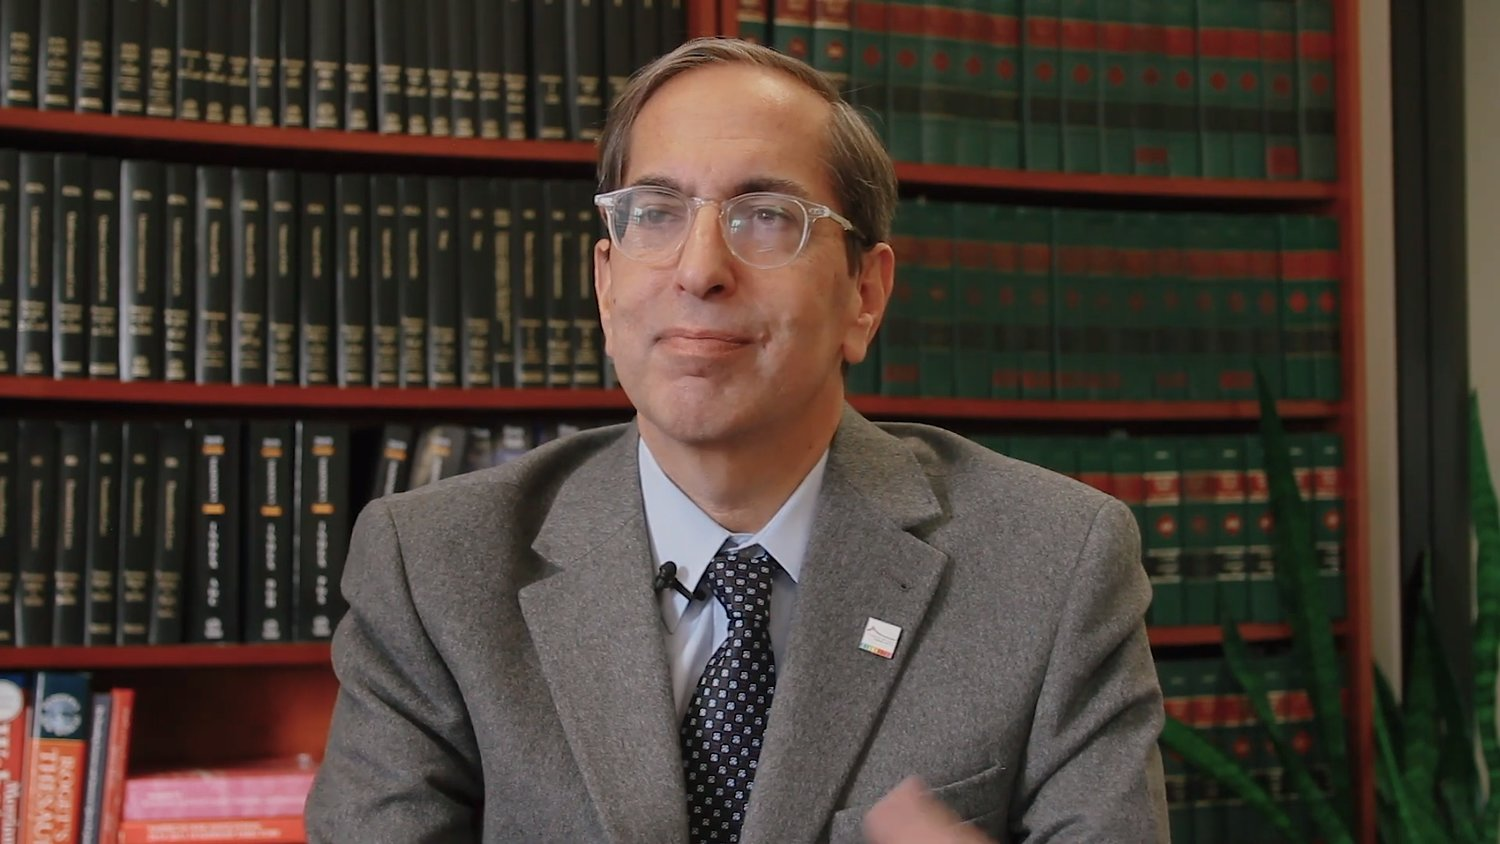 The LGBT Bar Association of New York released a recorded interview with Feinman after his death.